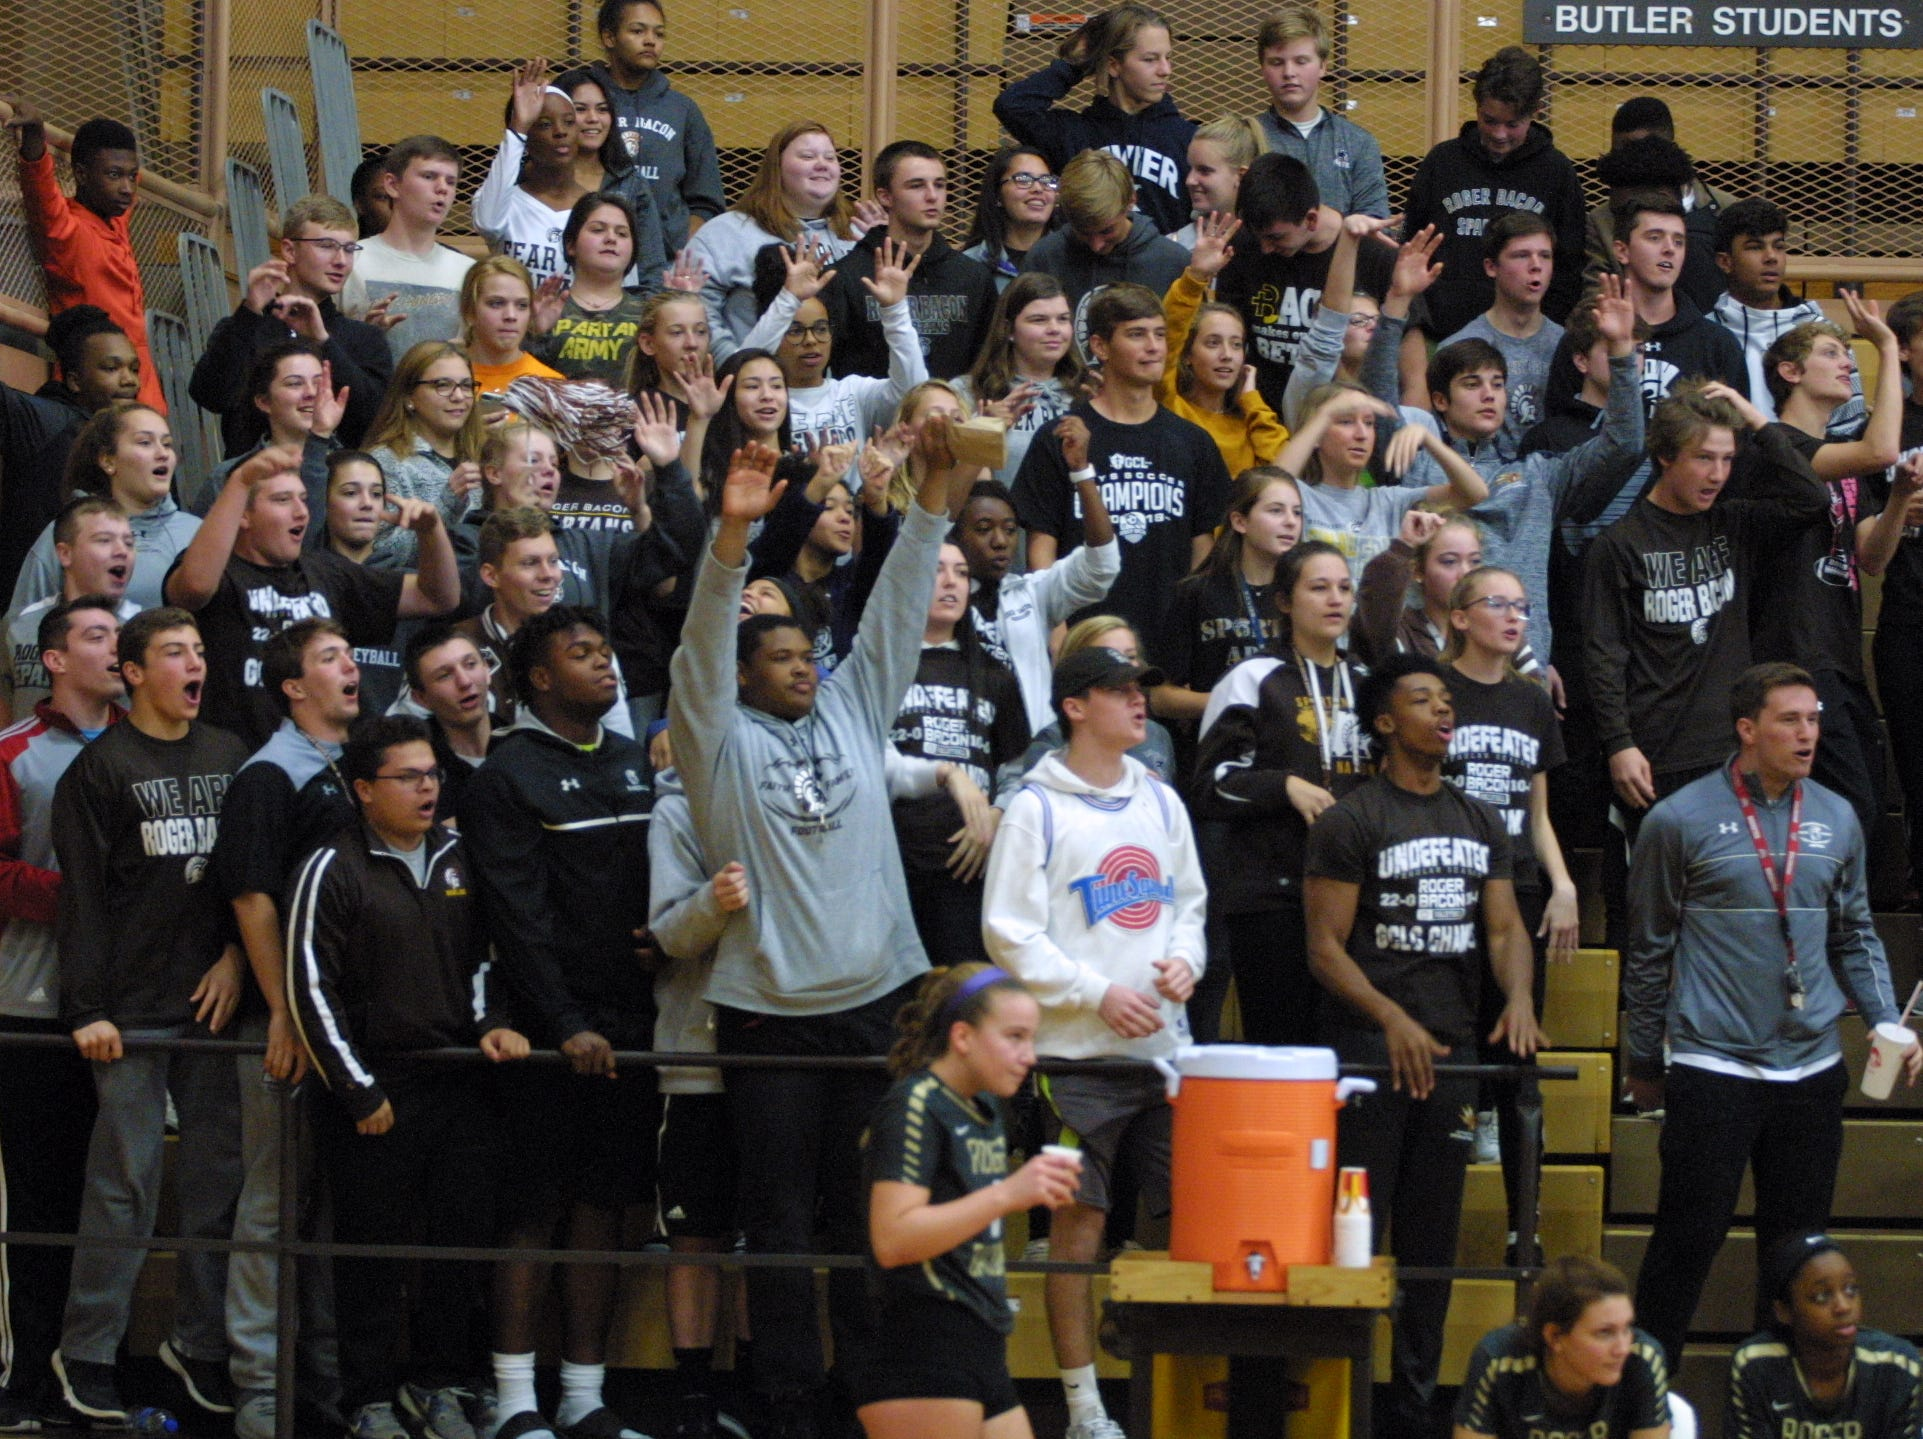 Roger Bacon fans cheer during their team's match against Bishop Fenwick in the regional final at Butler High School, Saturday, Nov. 3, 2018.